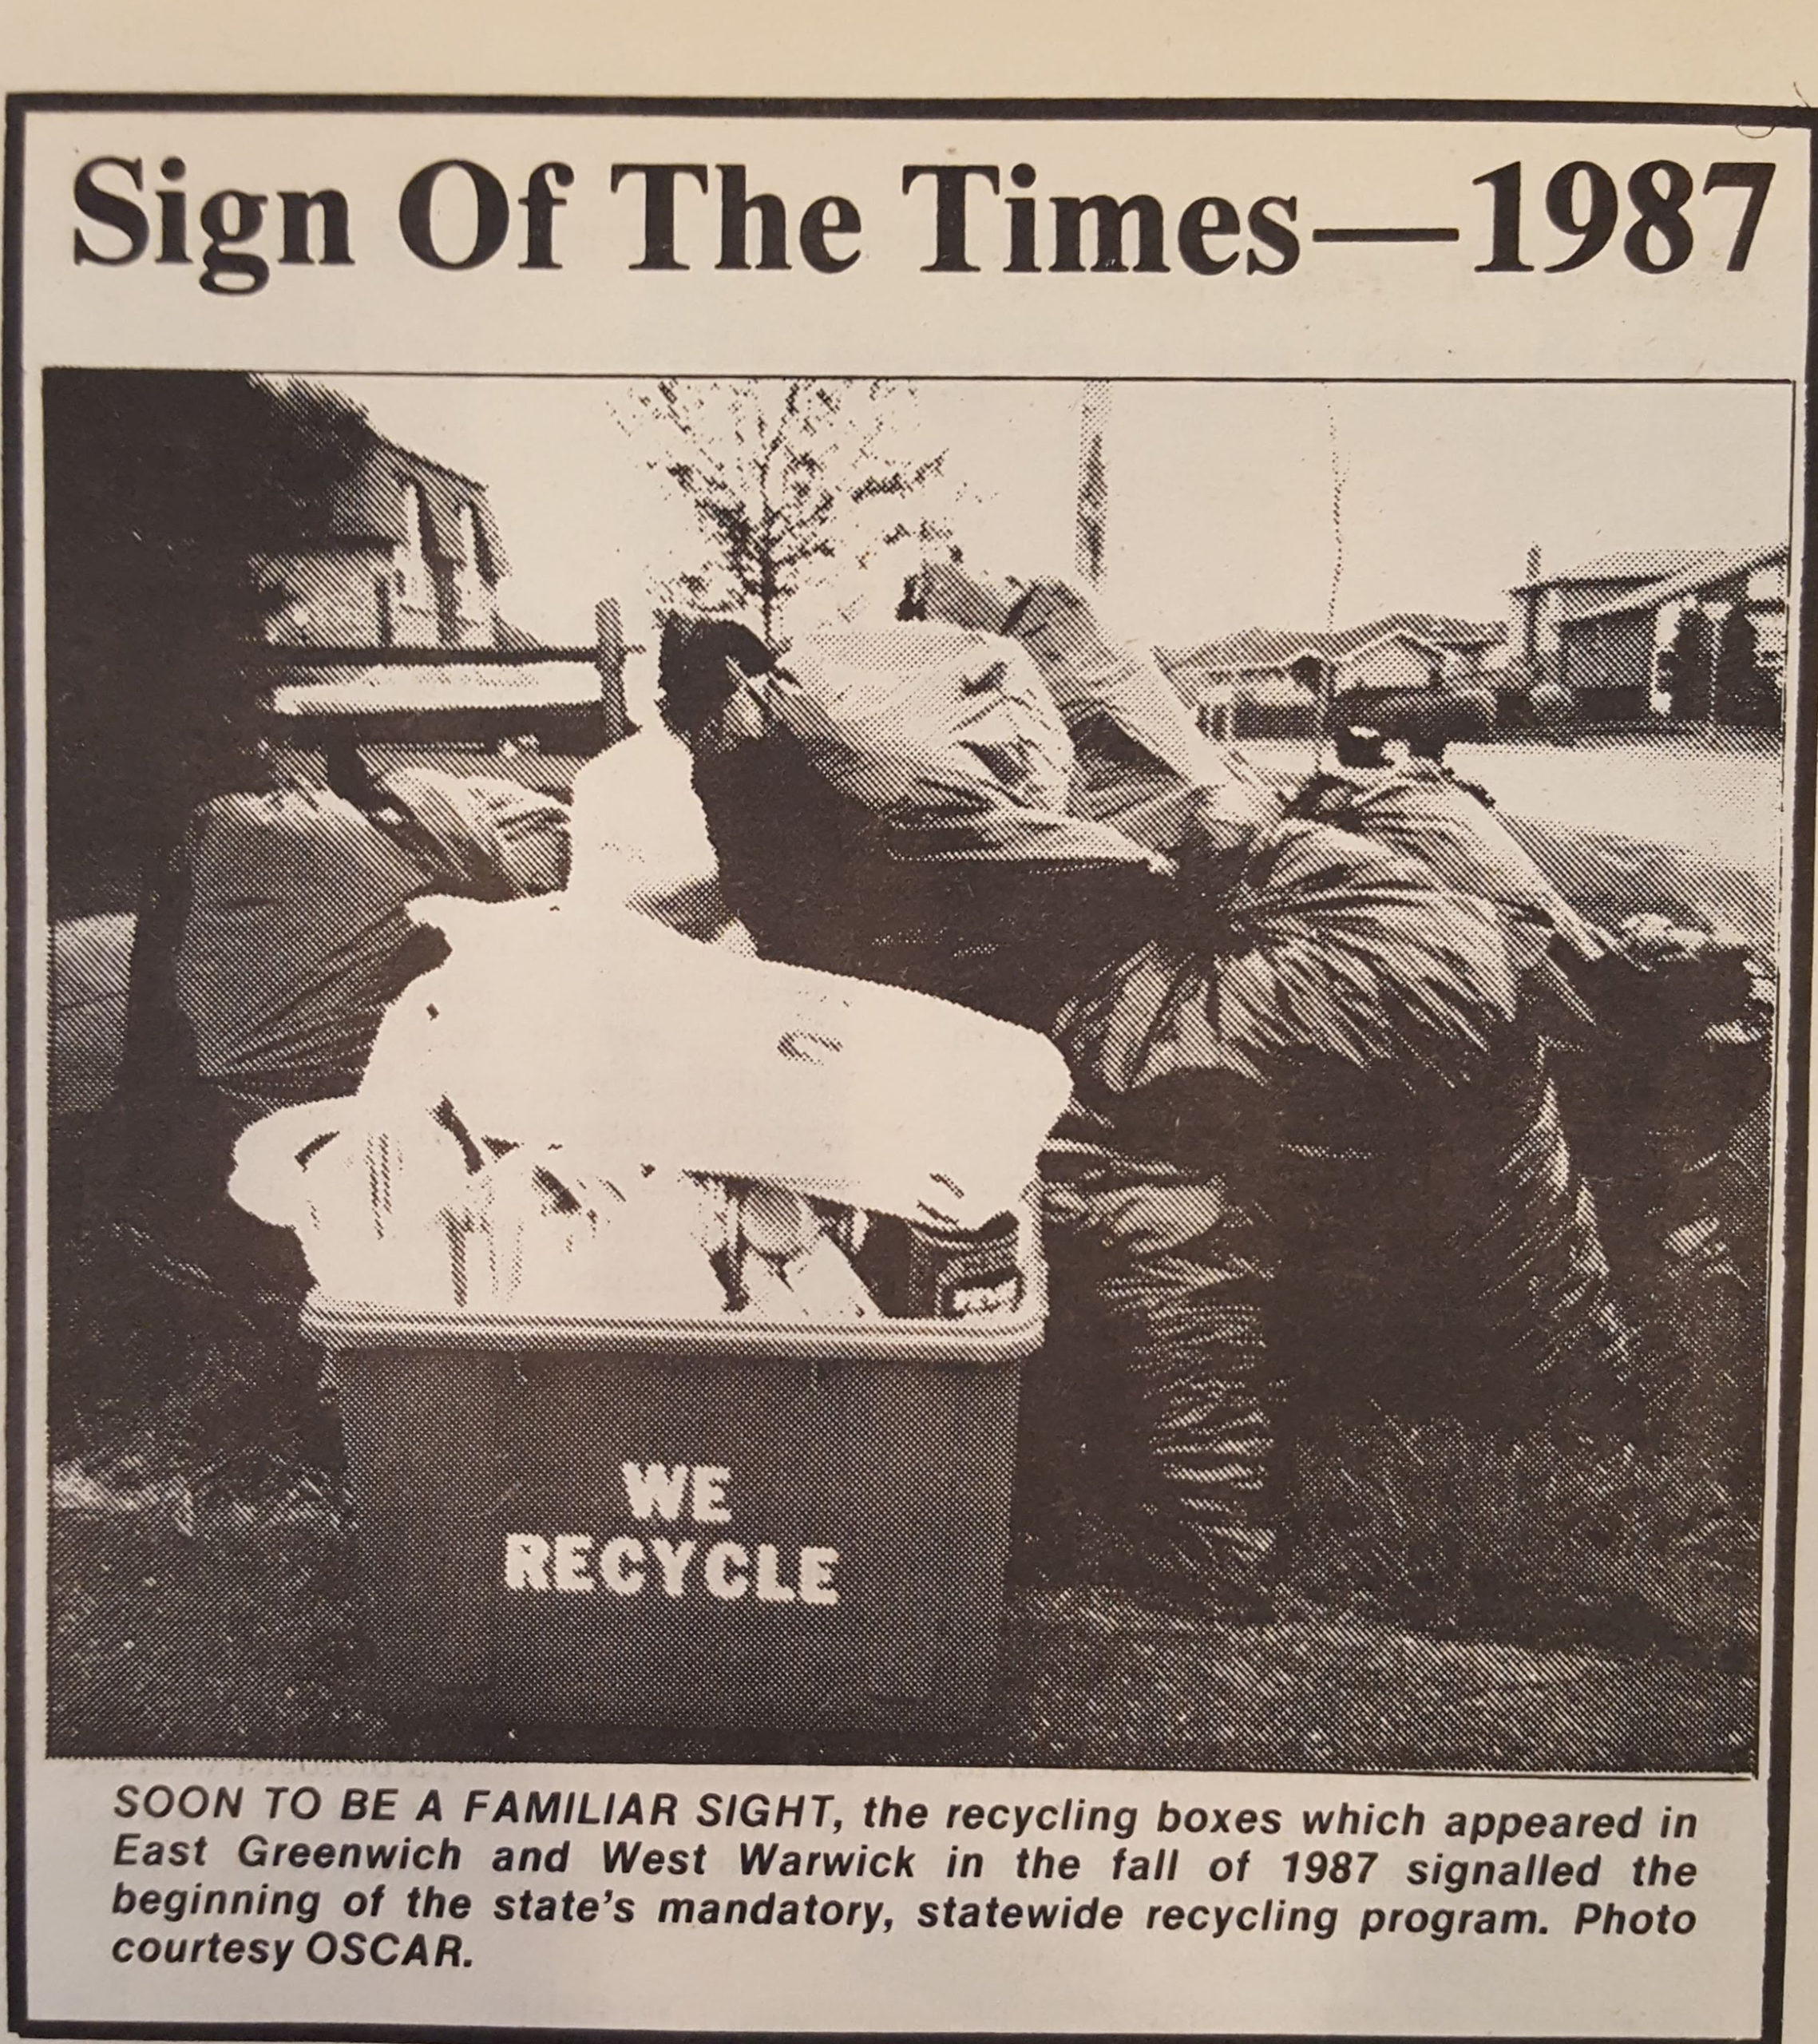 Photo of new recycling bin in 1987